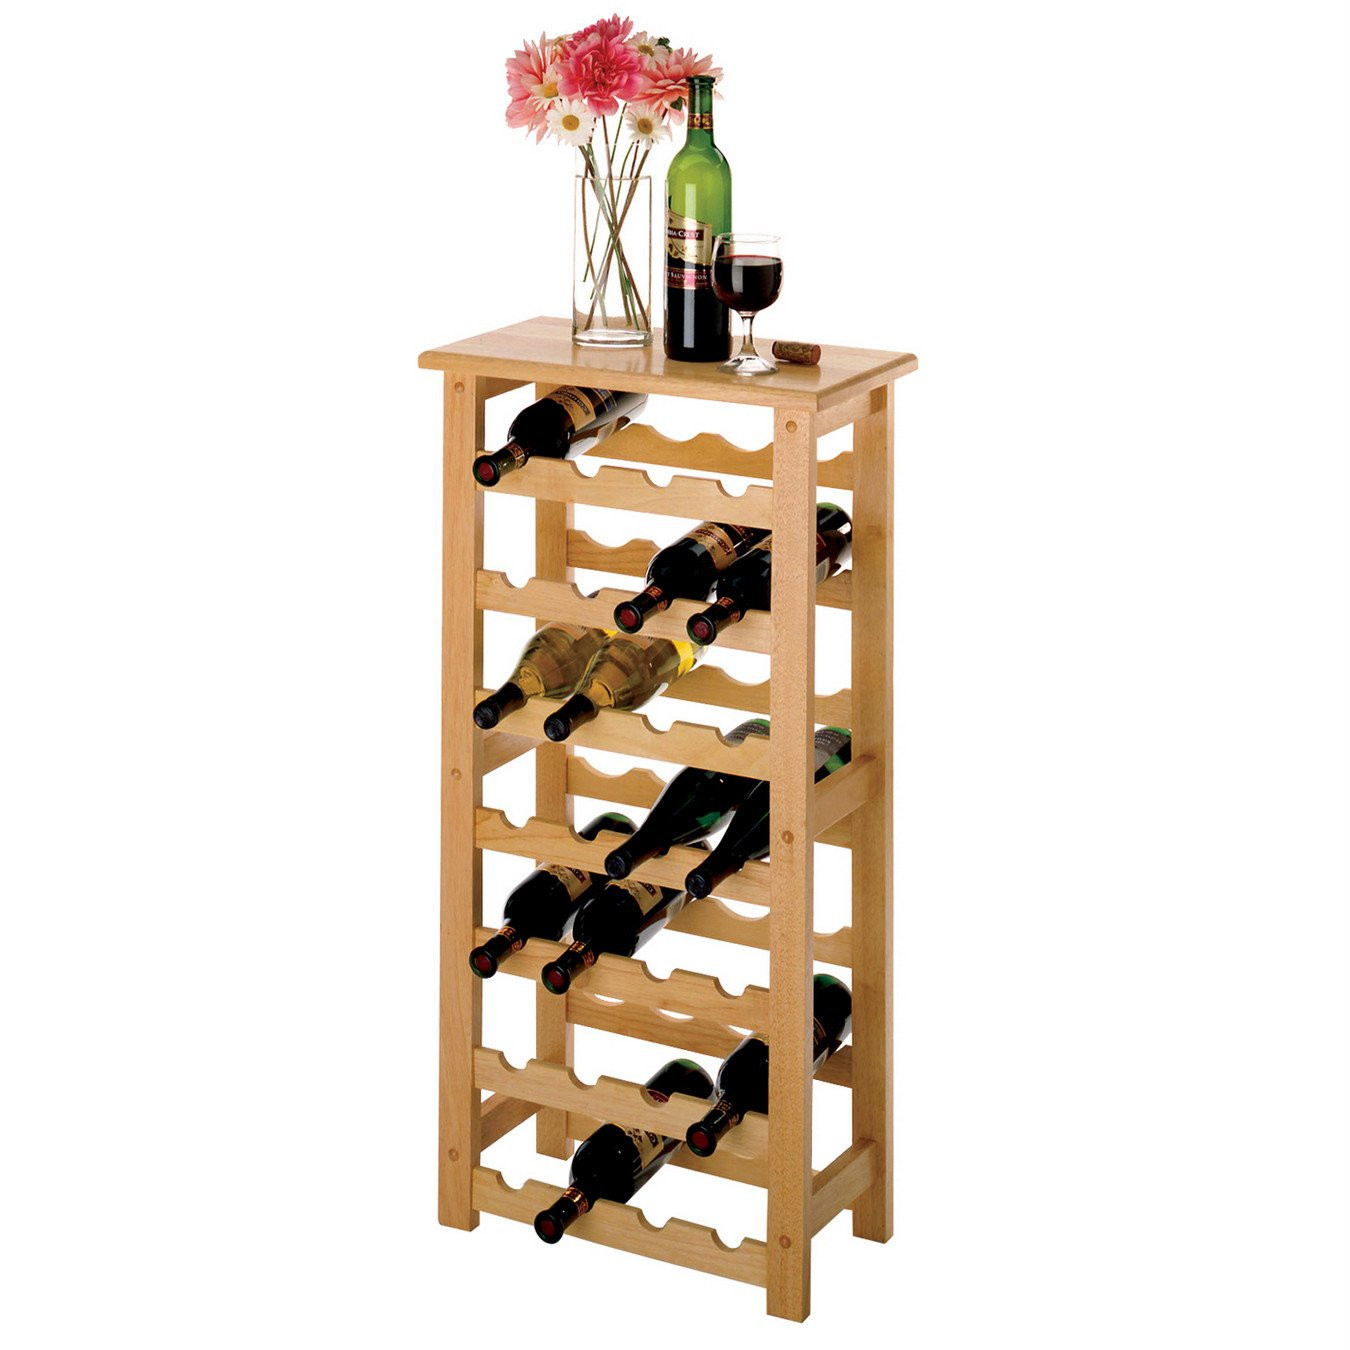 hoosier glass vase 4095 of https casagear com products 1 2 l stainless steel electric cordless for impressive piece of 28 bottle wine rack 60 v1479840806